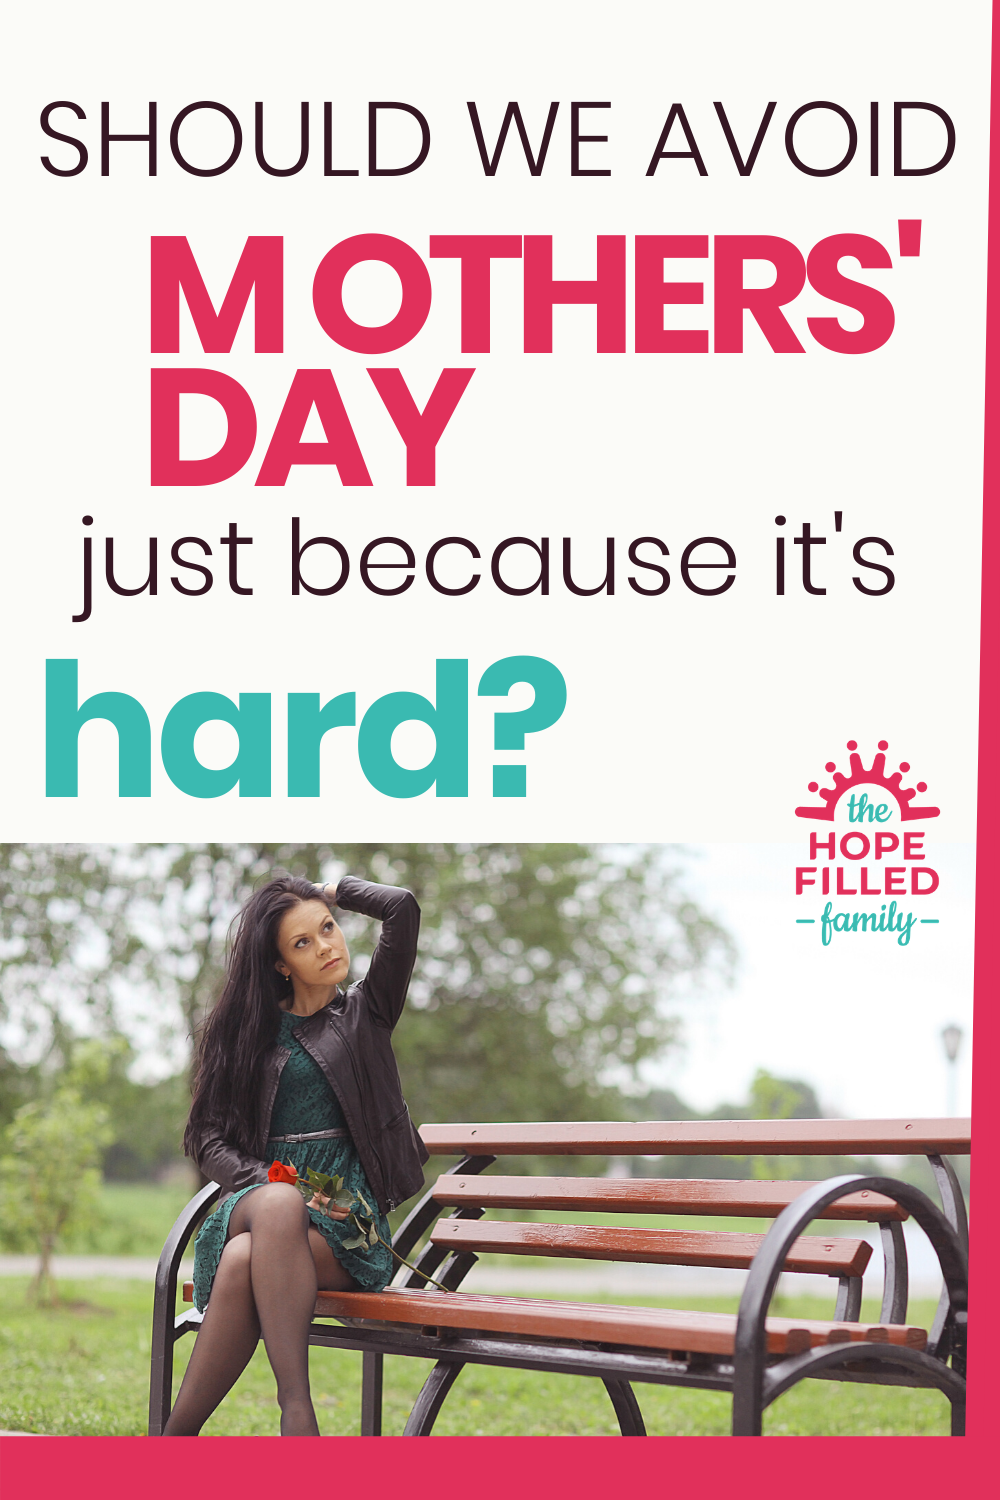 Should we abandon Mothers' Day because of all the hard feelings? Or is there another way we can approach this day, so difficult for many?